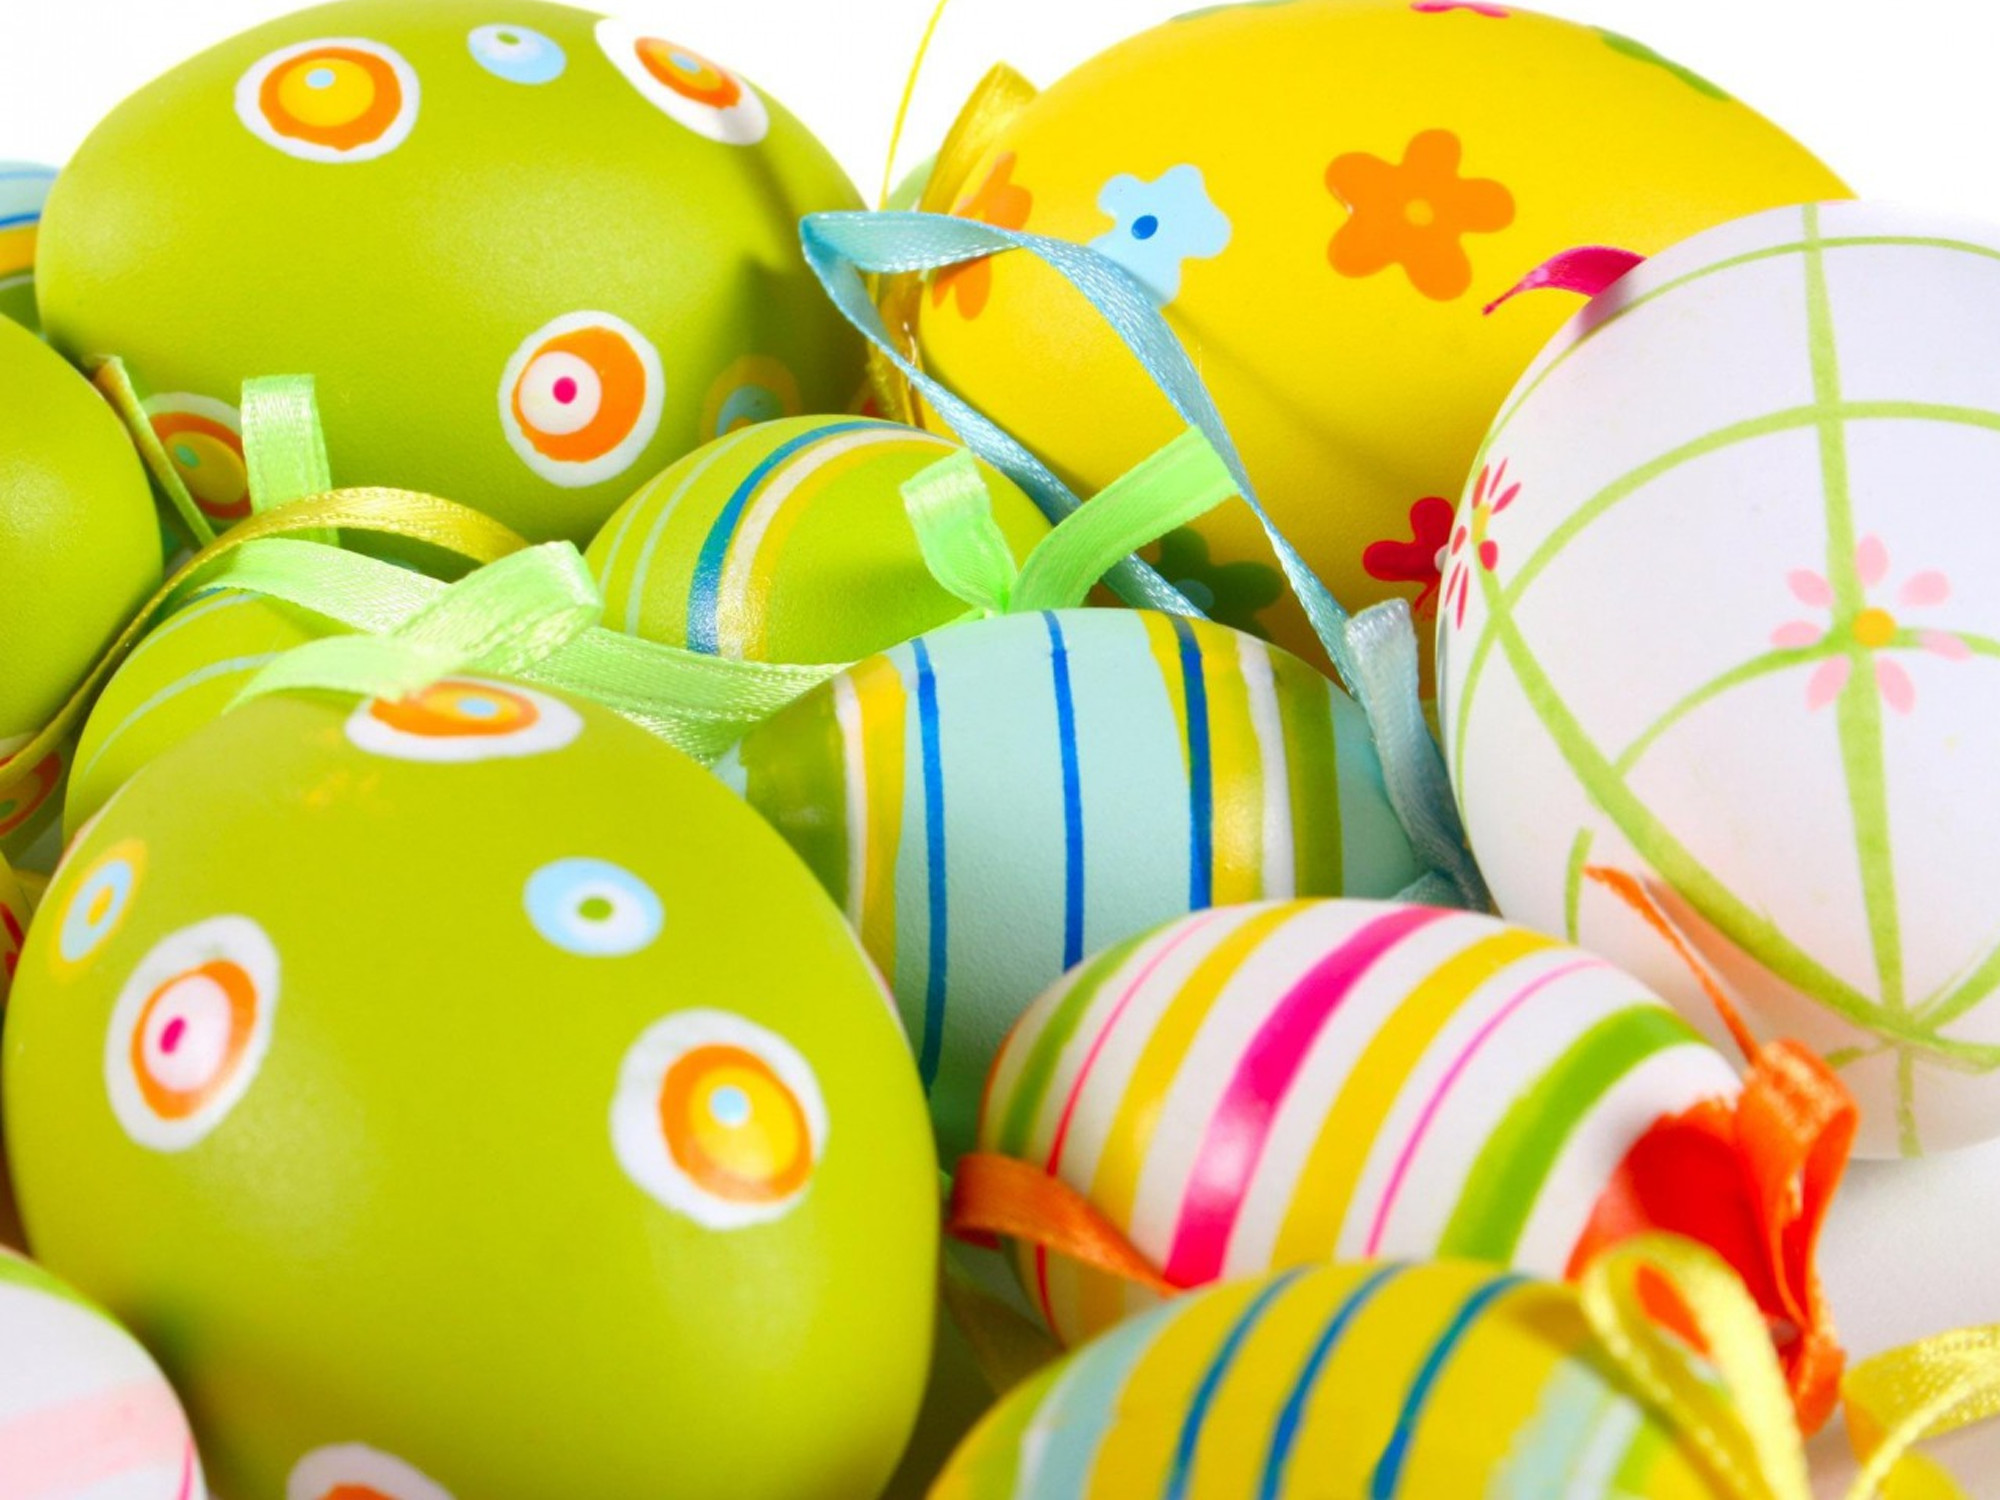 2000x1500 Yellow and multicolored Easter egg wallpaper